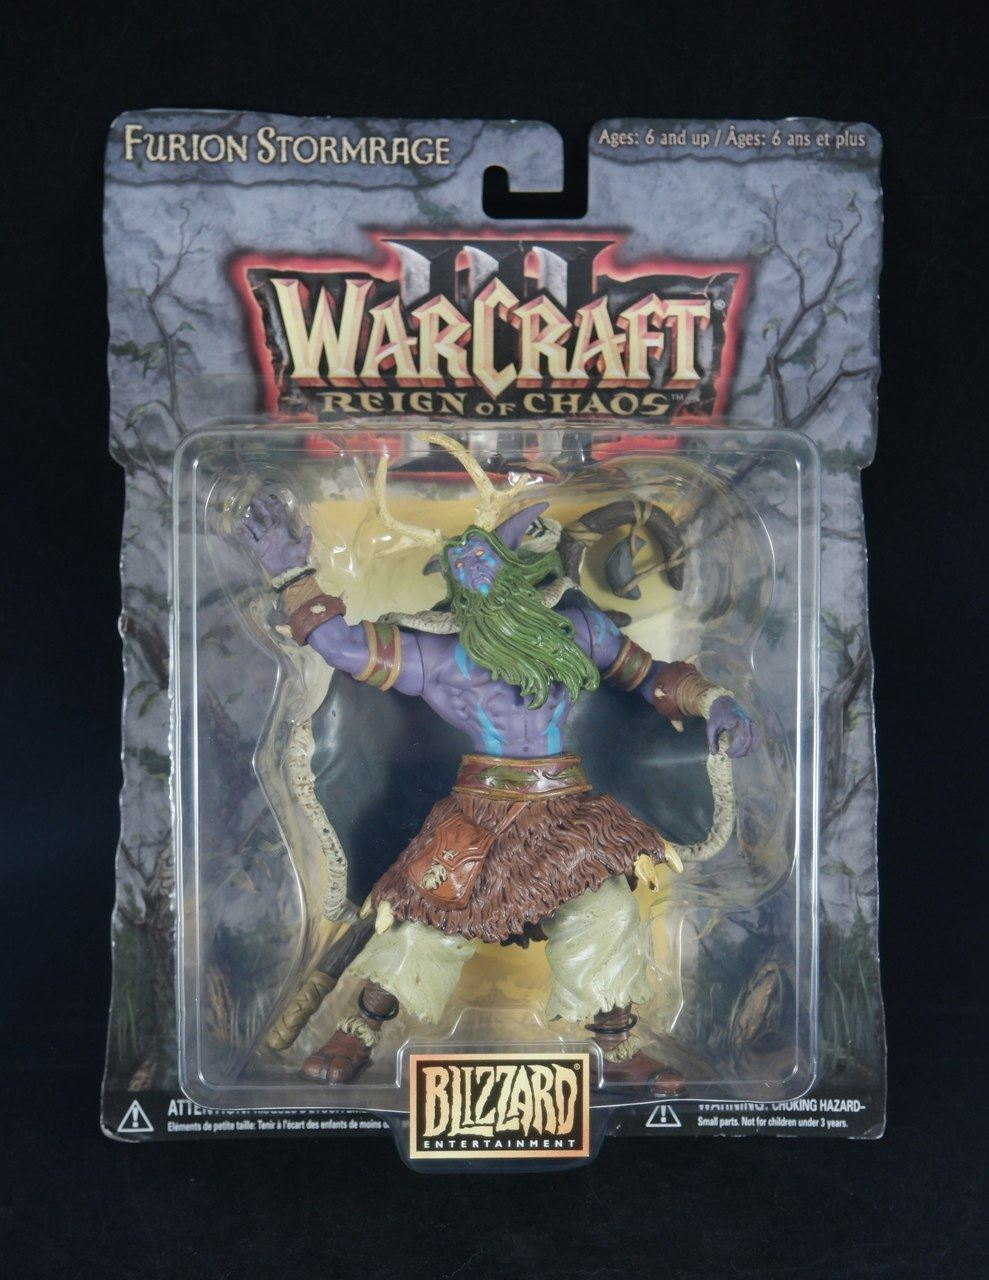 BLIZZARD ENTERTAINMENT Furion Stormrage of  Warcraft Reign Of Chaos  7  2002 NEW